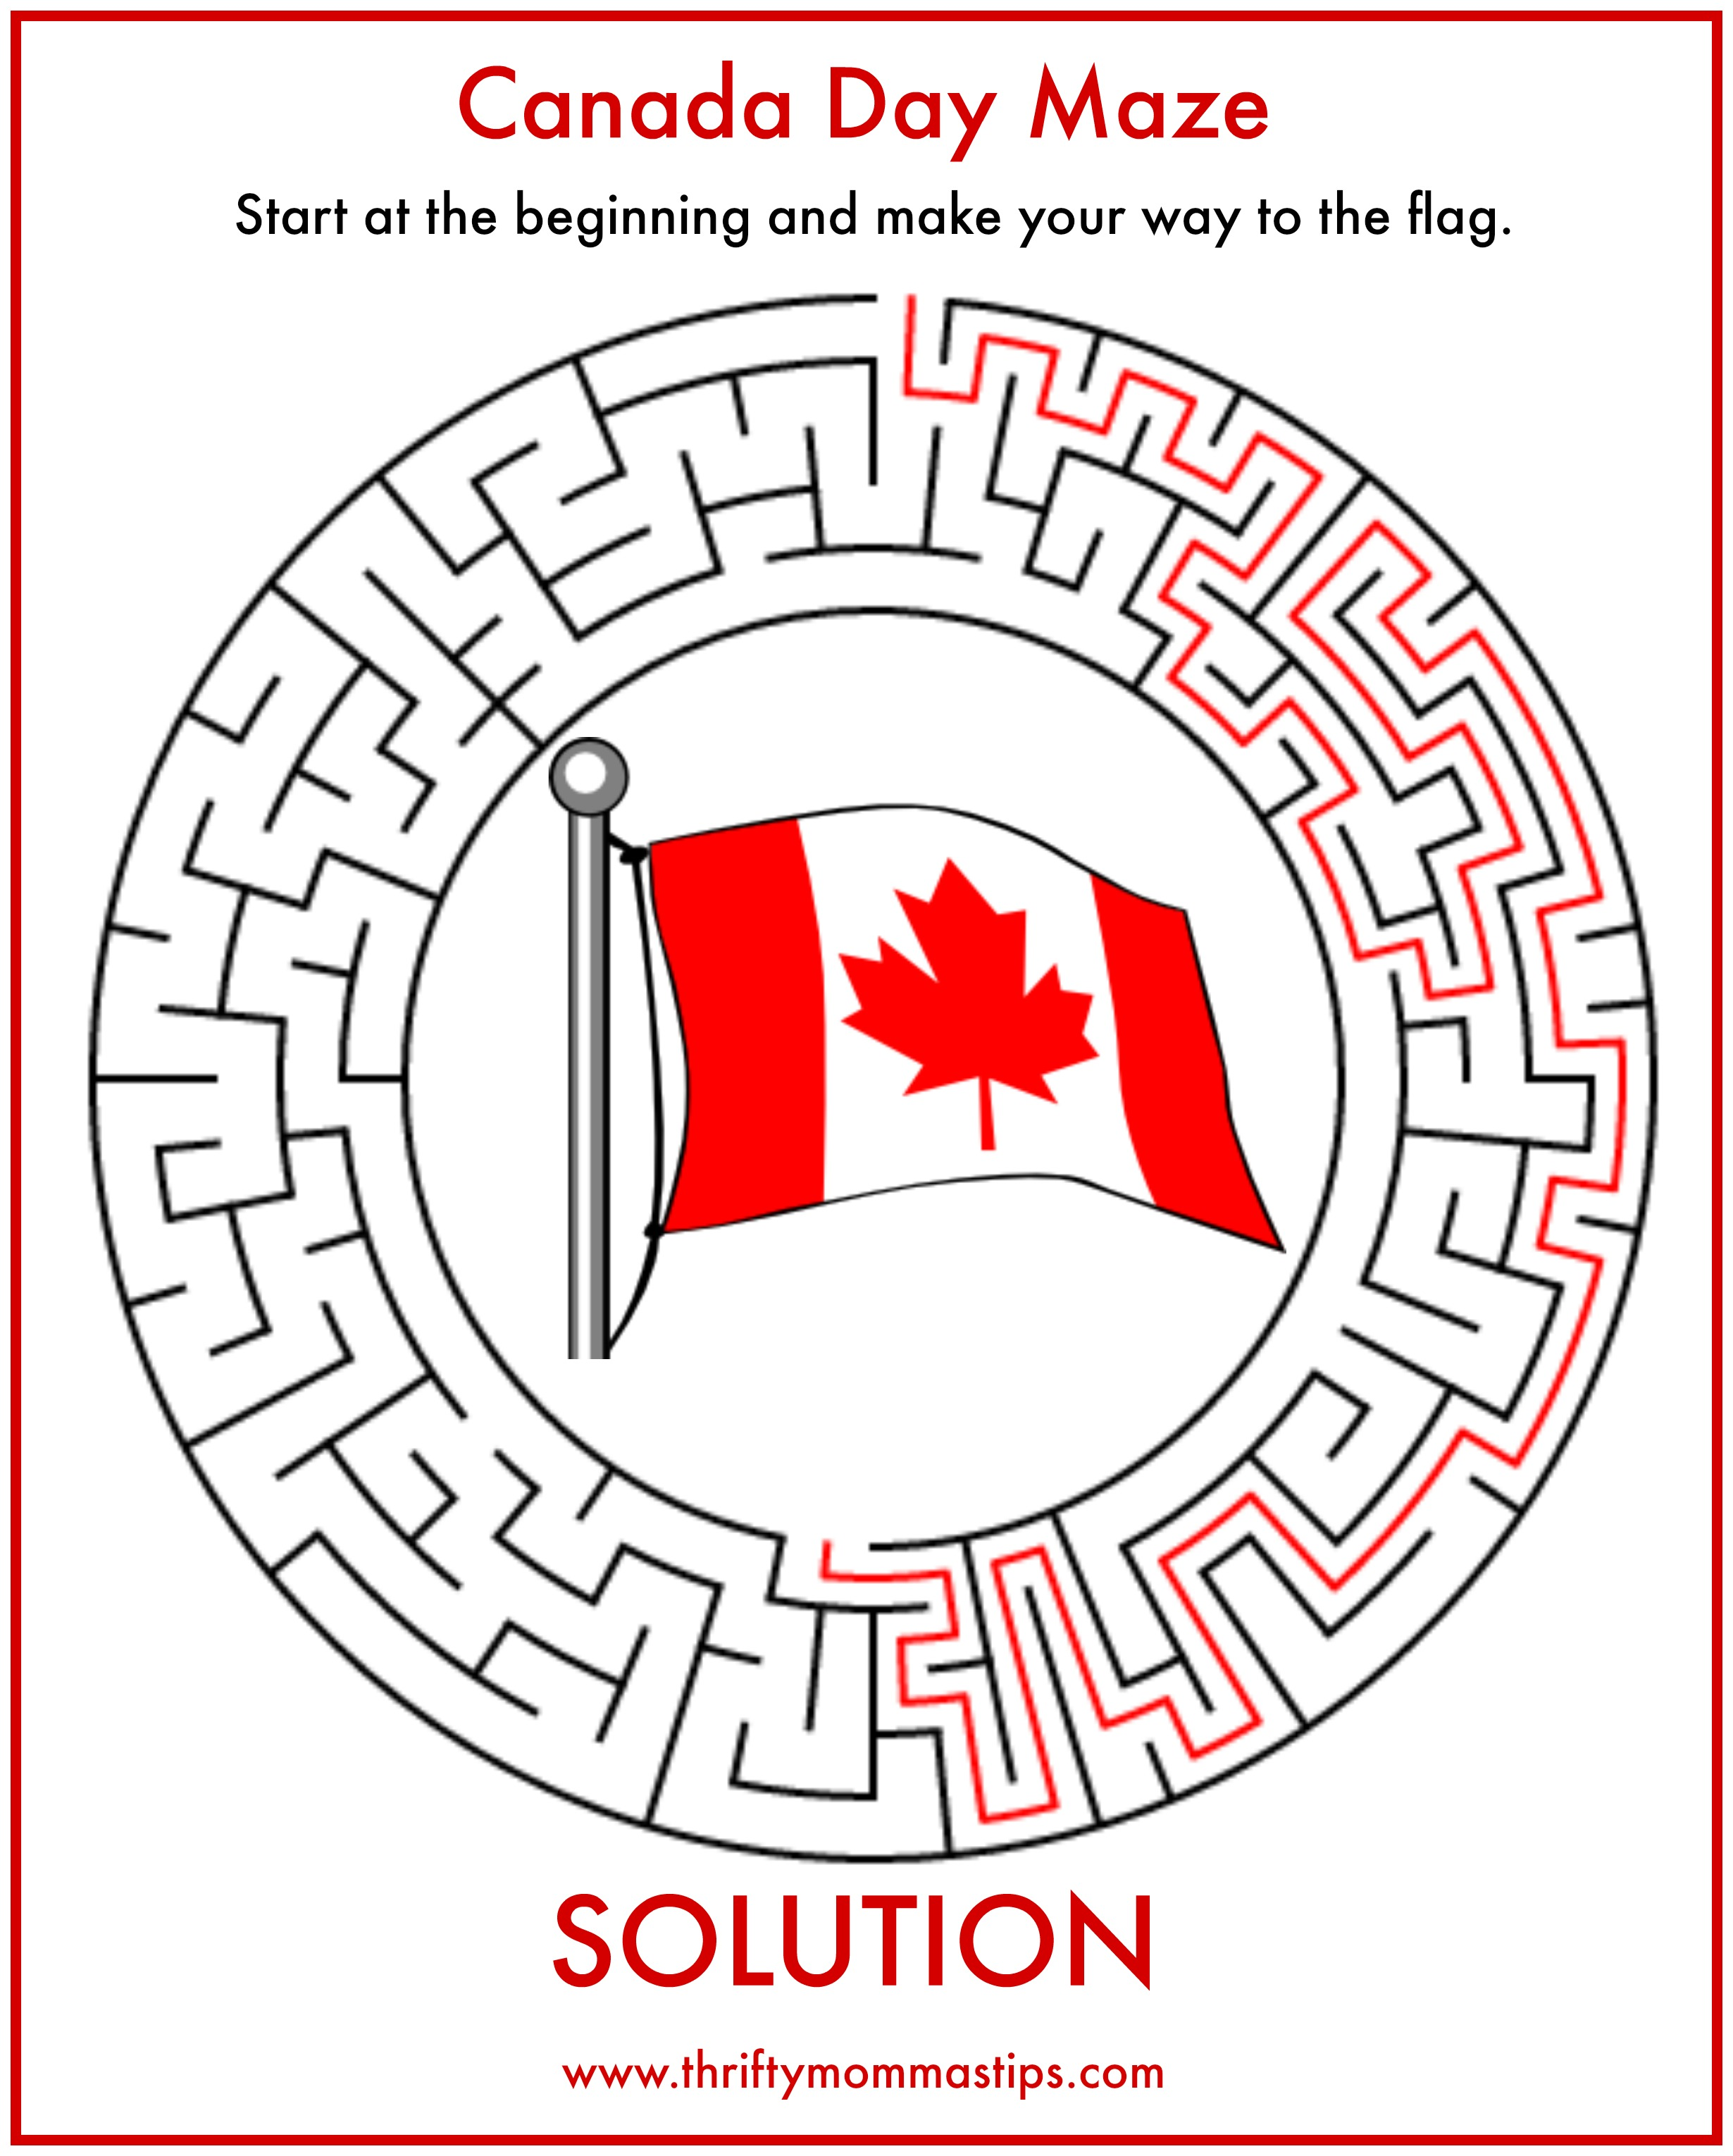 Pizza lessons and a pizza coloring page printable - Family Day Word Scramble Canada Day Maze Printable Solution